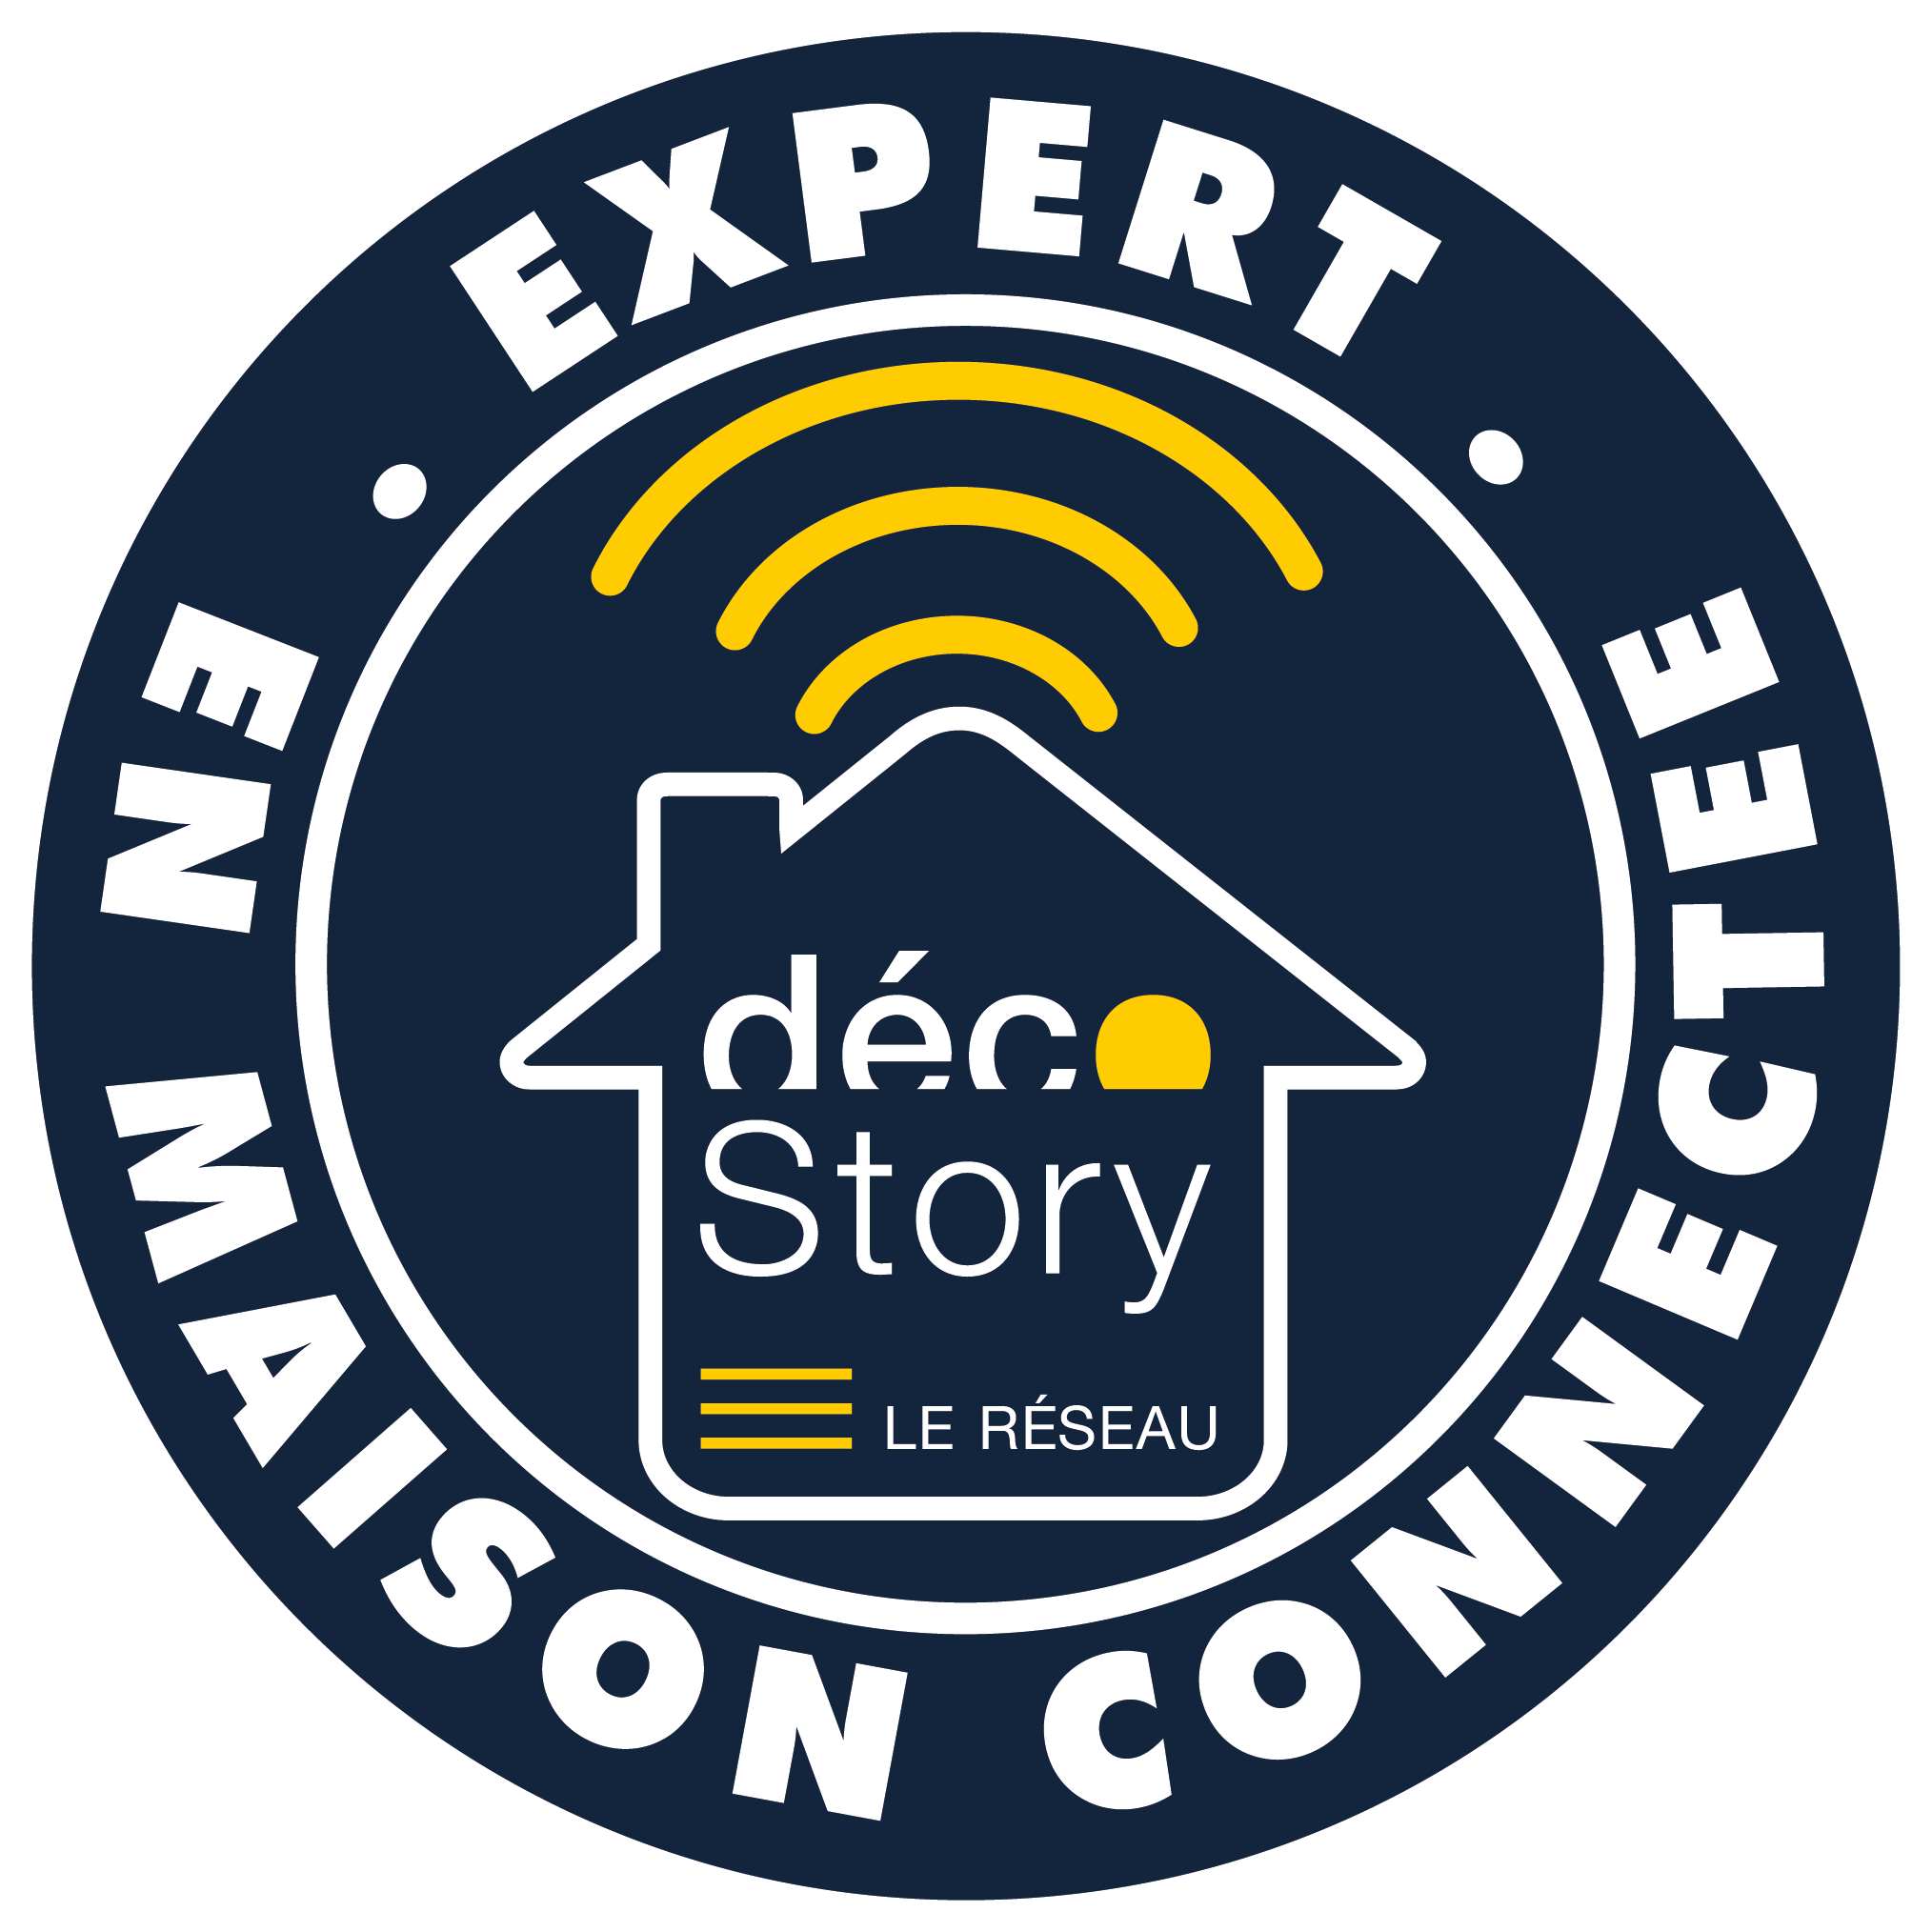 label EXPERT EN MAISON CONNECTEE